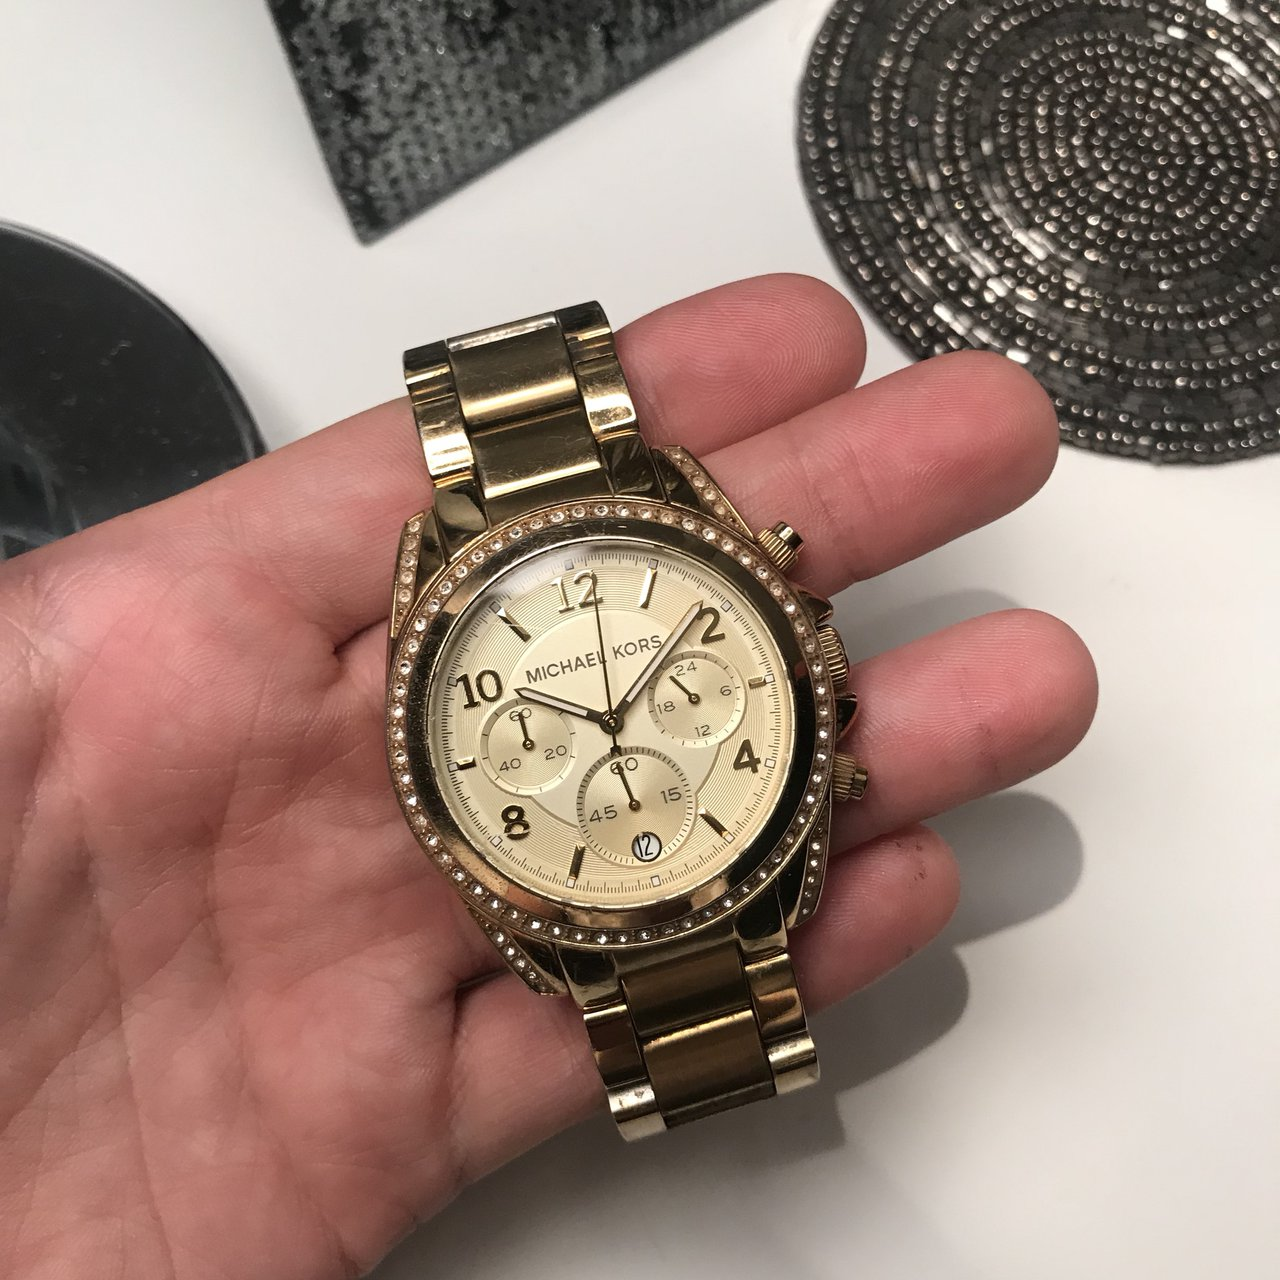 d8f63242de96 Gold Michael Kors watch. In good condition other than few on - Depop